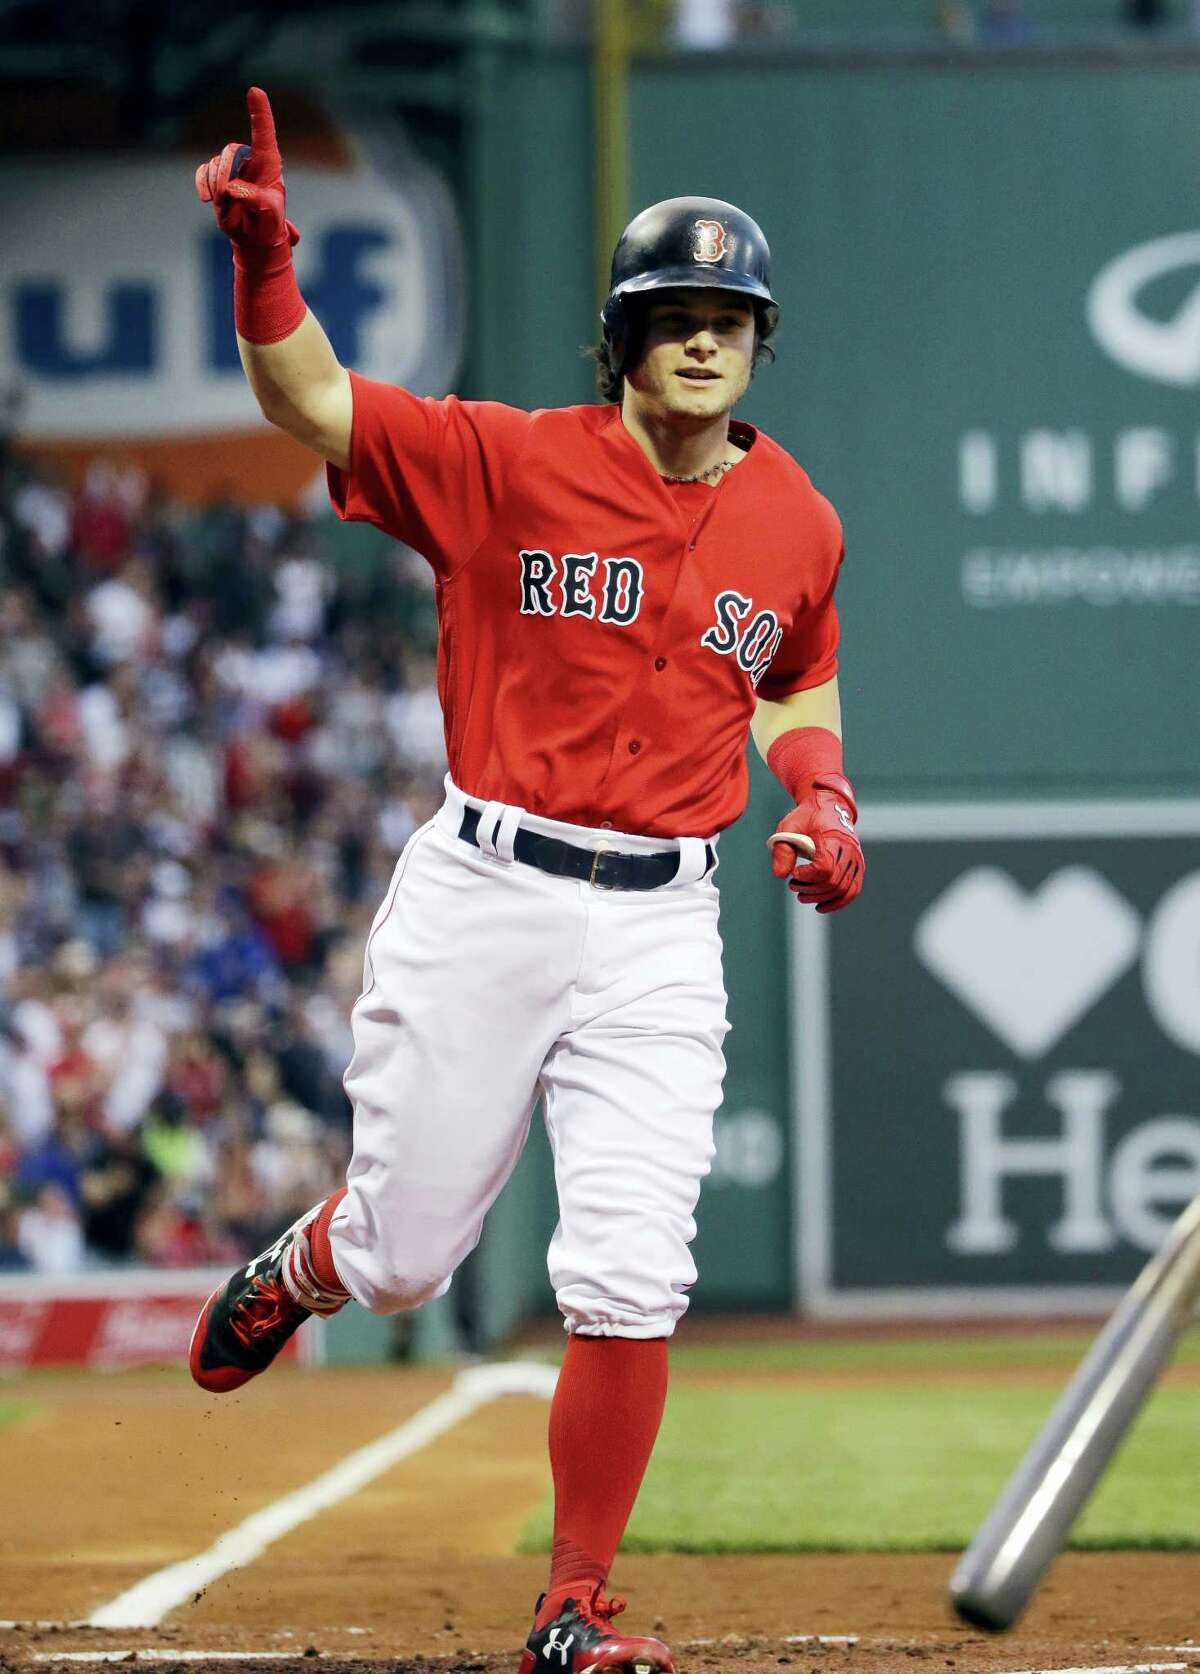 Boston Red Sox's Andrew Benintendi gestures as he crosses the plate with a solo home run during the first inning of the team's baseball game against the Chicago Cubs at Fenway Park, Friday in Boston.